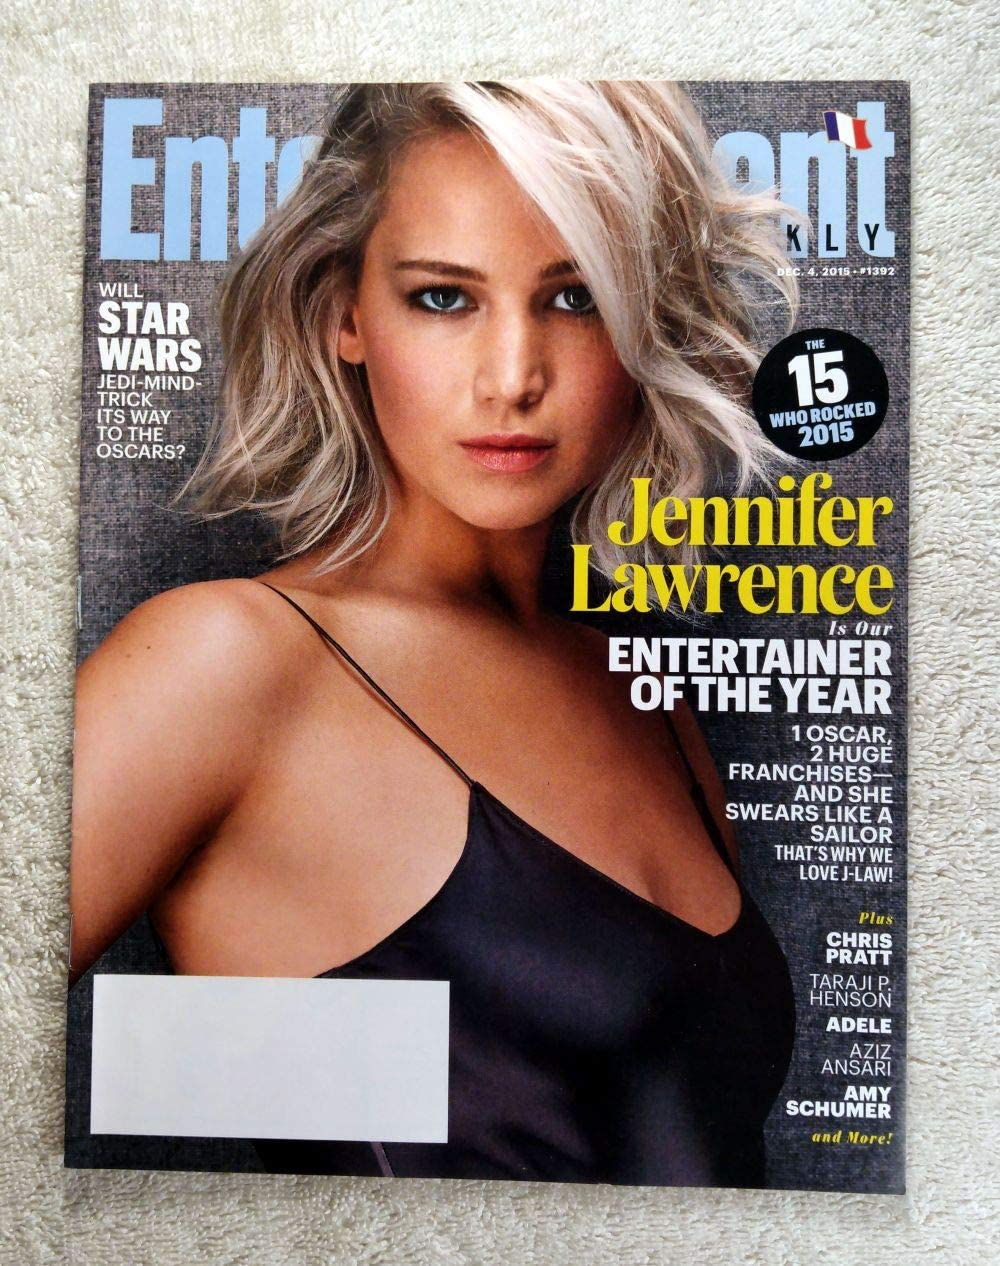 Entertainment Weekly December 4, 2015